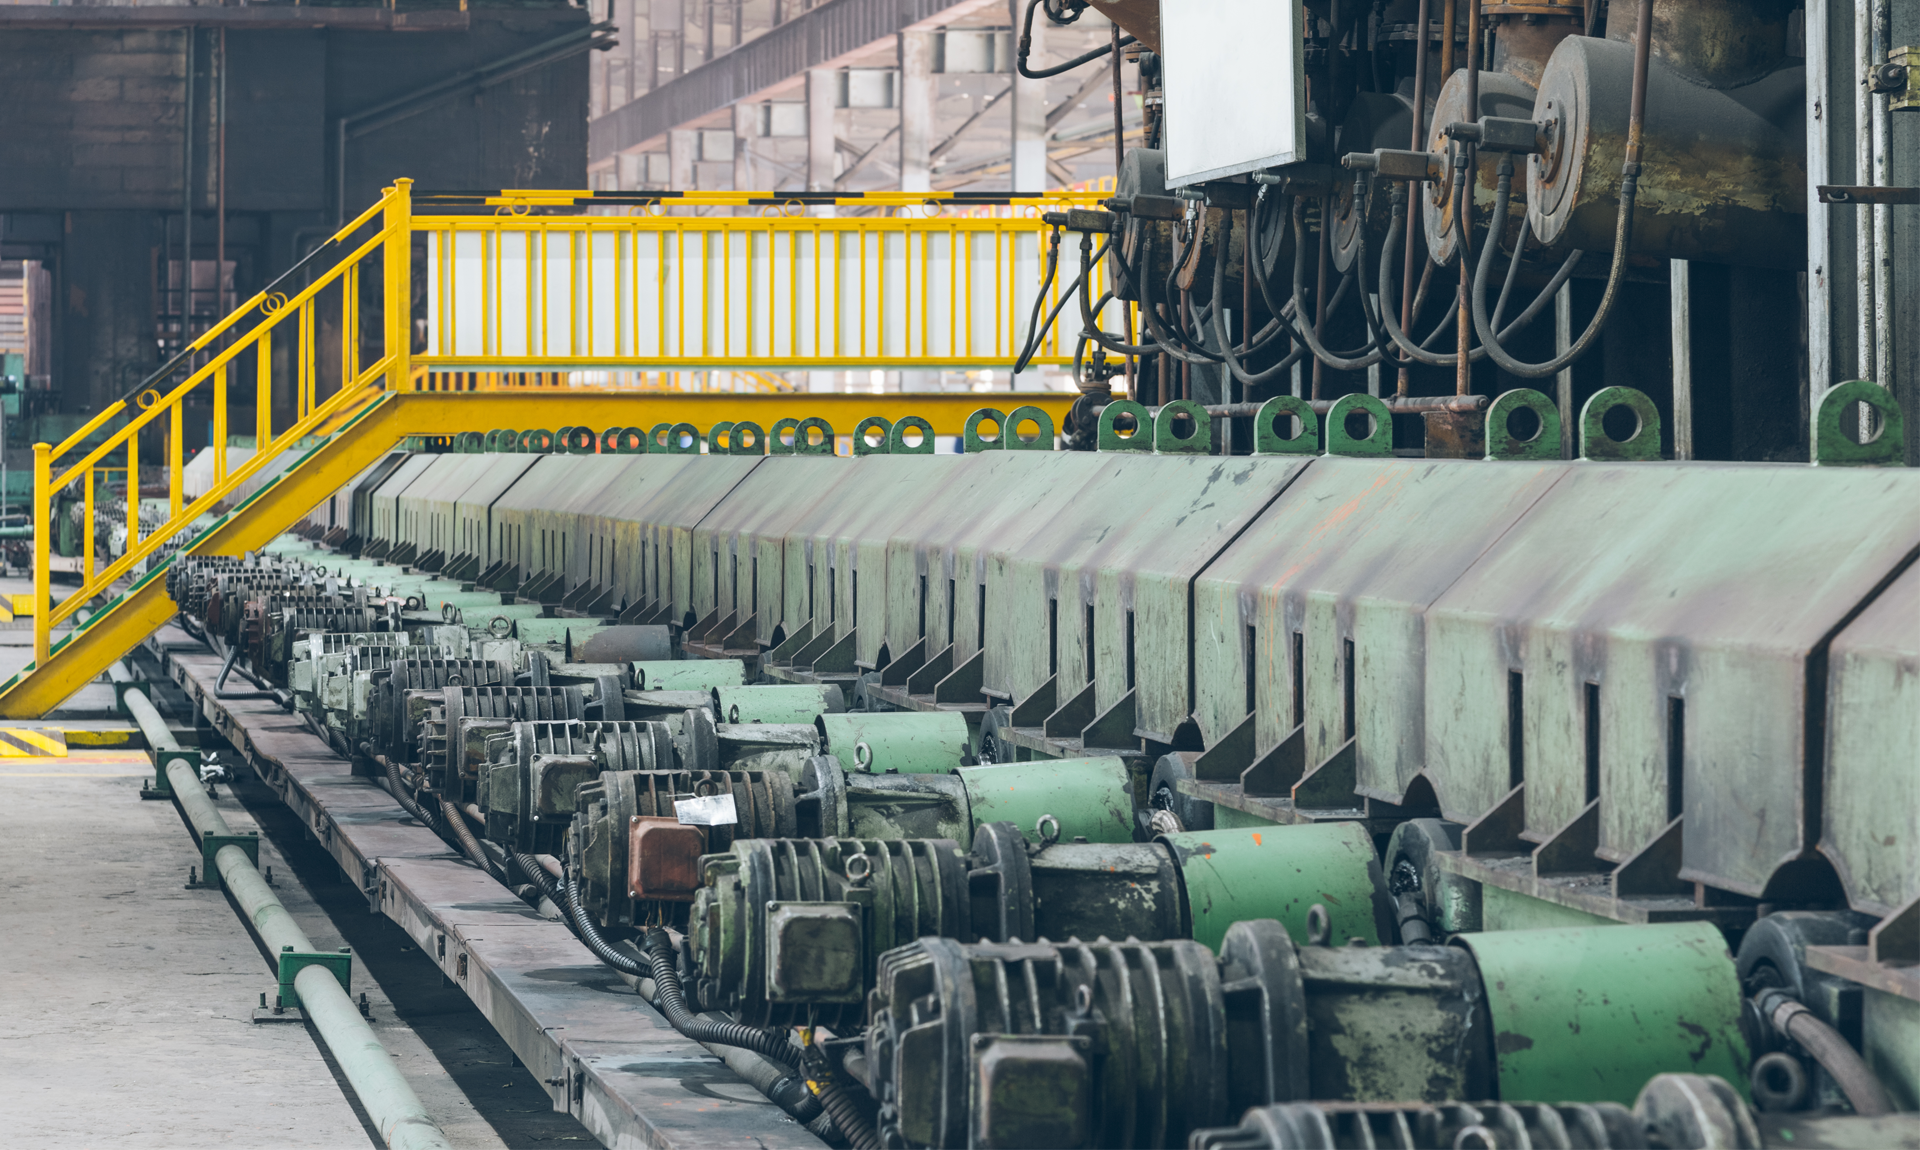 General purpose machinery in the UK: image of a production plant